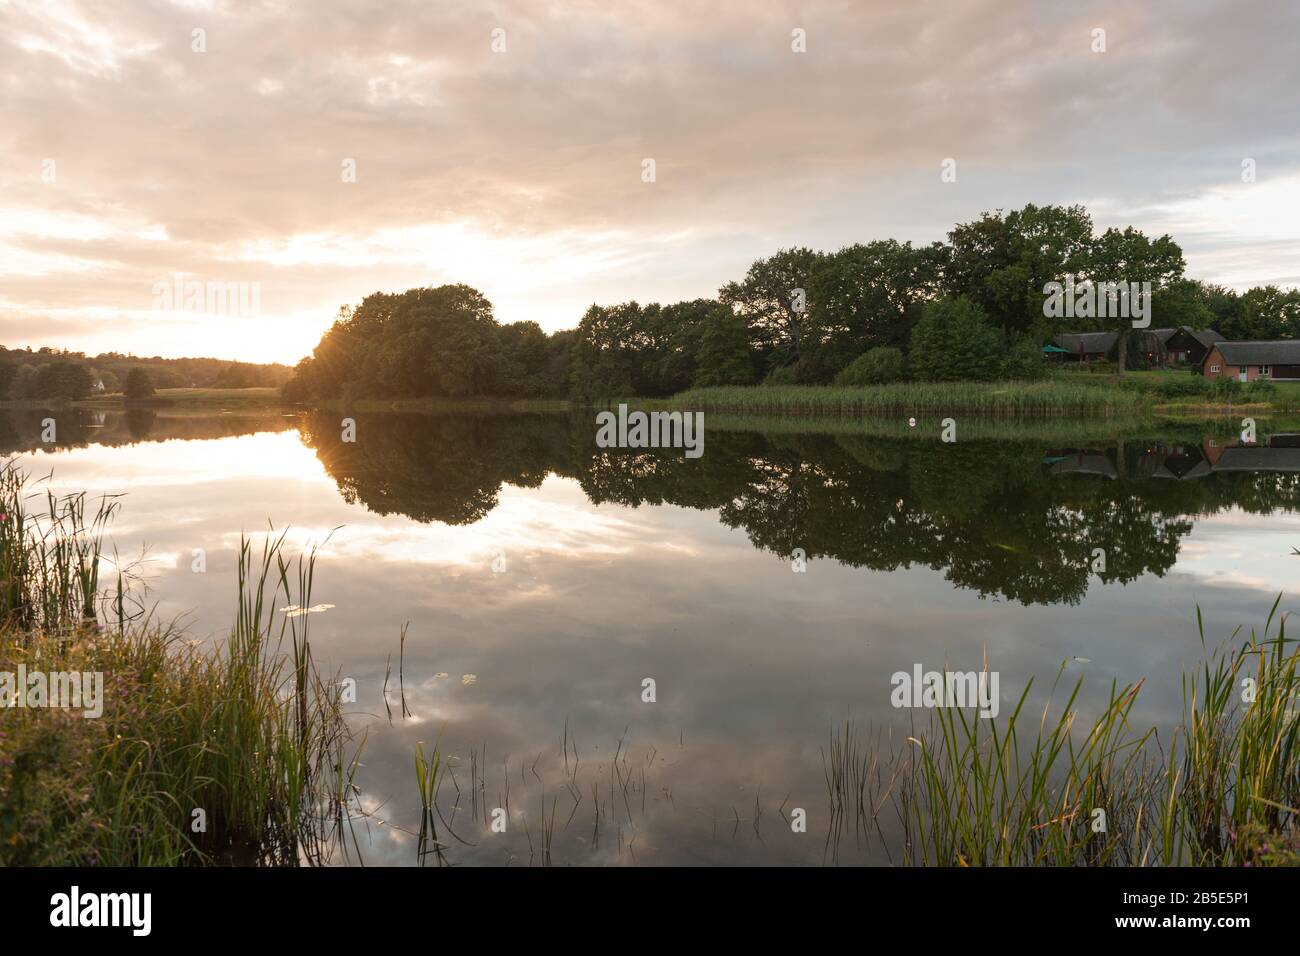 Lake Mustin, village of Mustin, County of Lauenburg, Schleswig-Holstein, North Germany, Central Europe Stock Photo